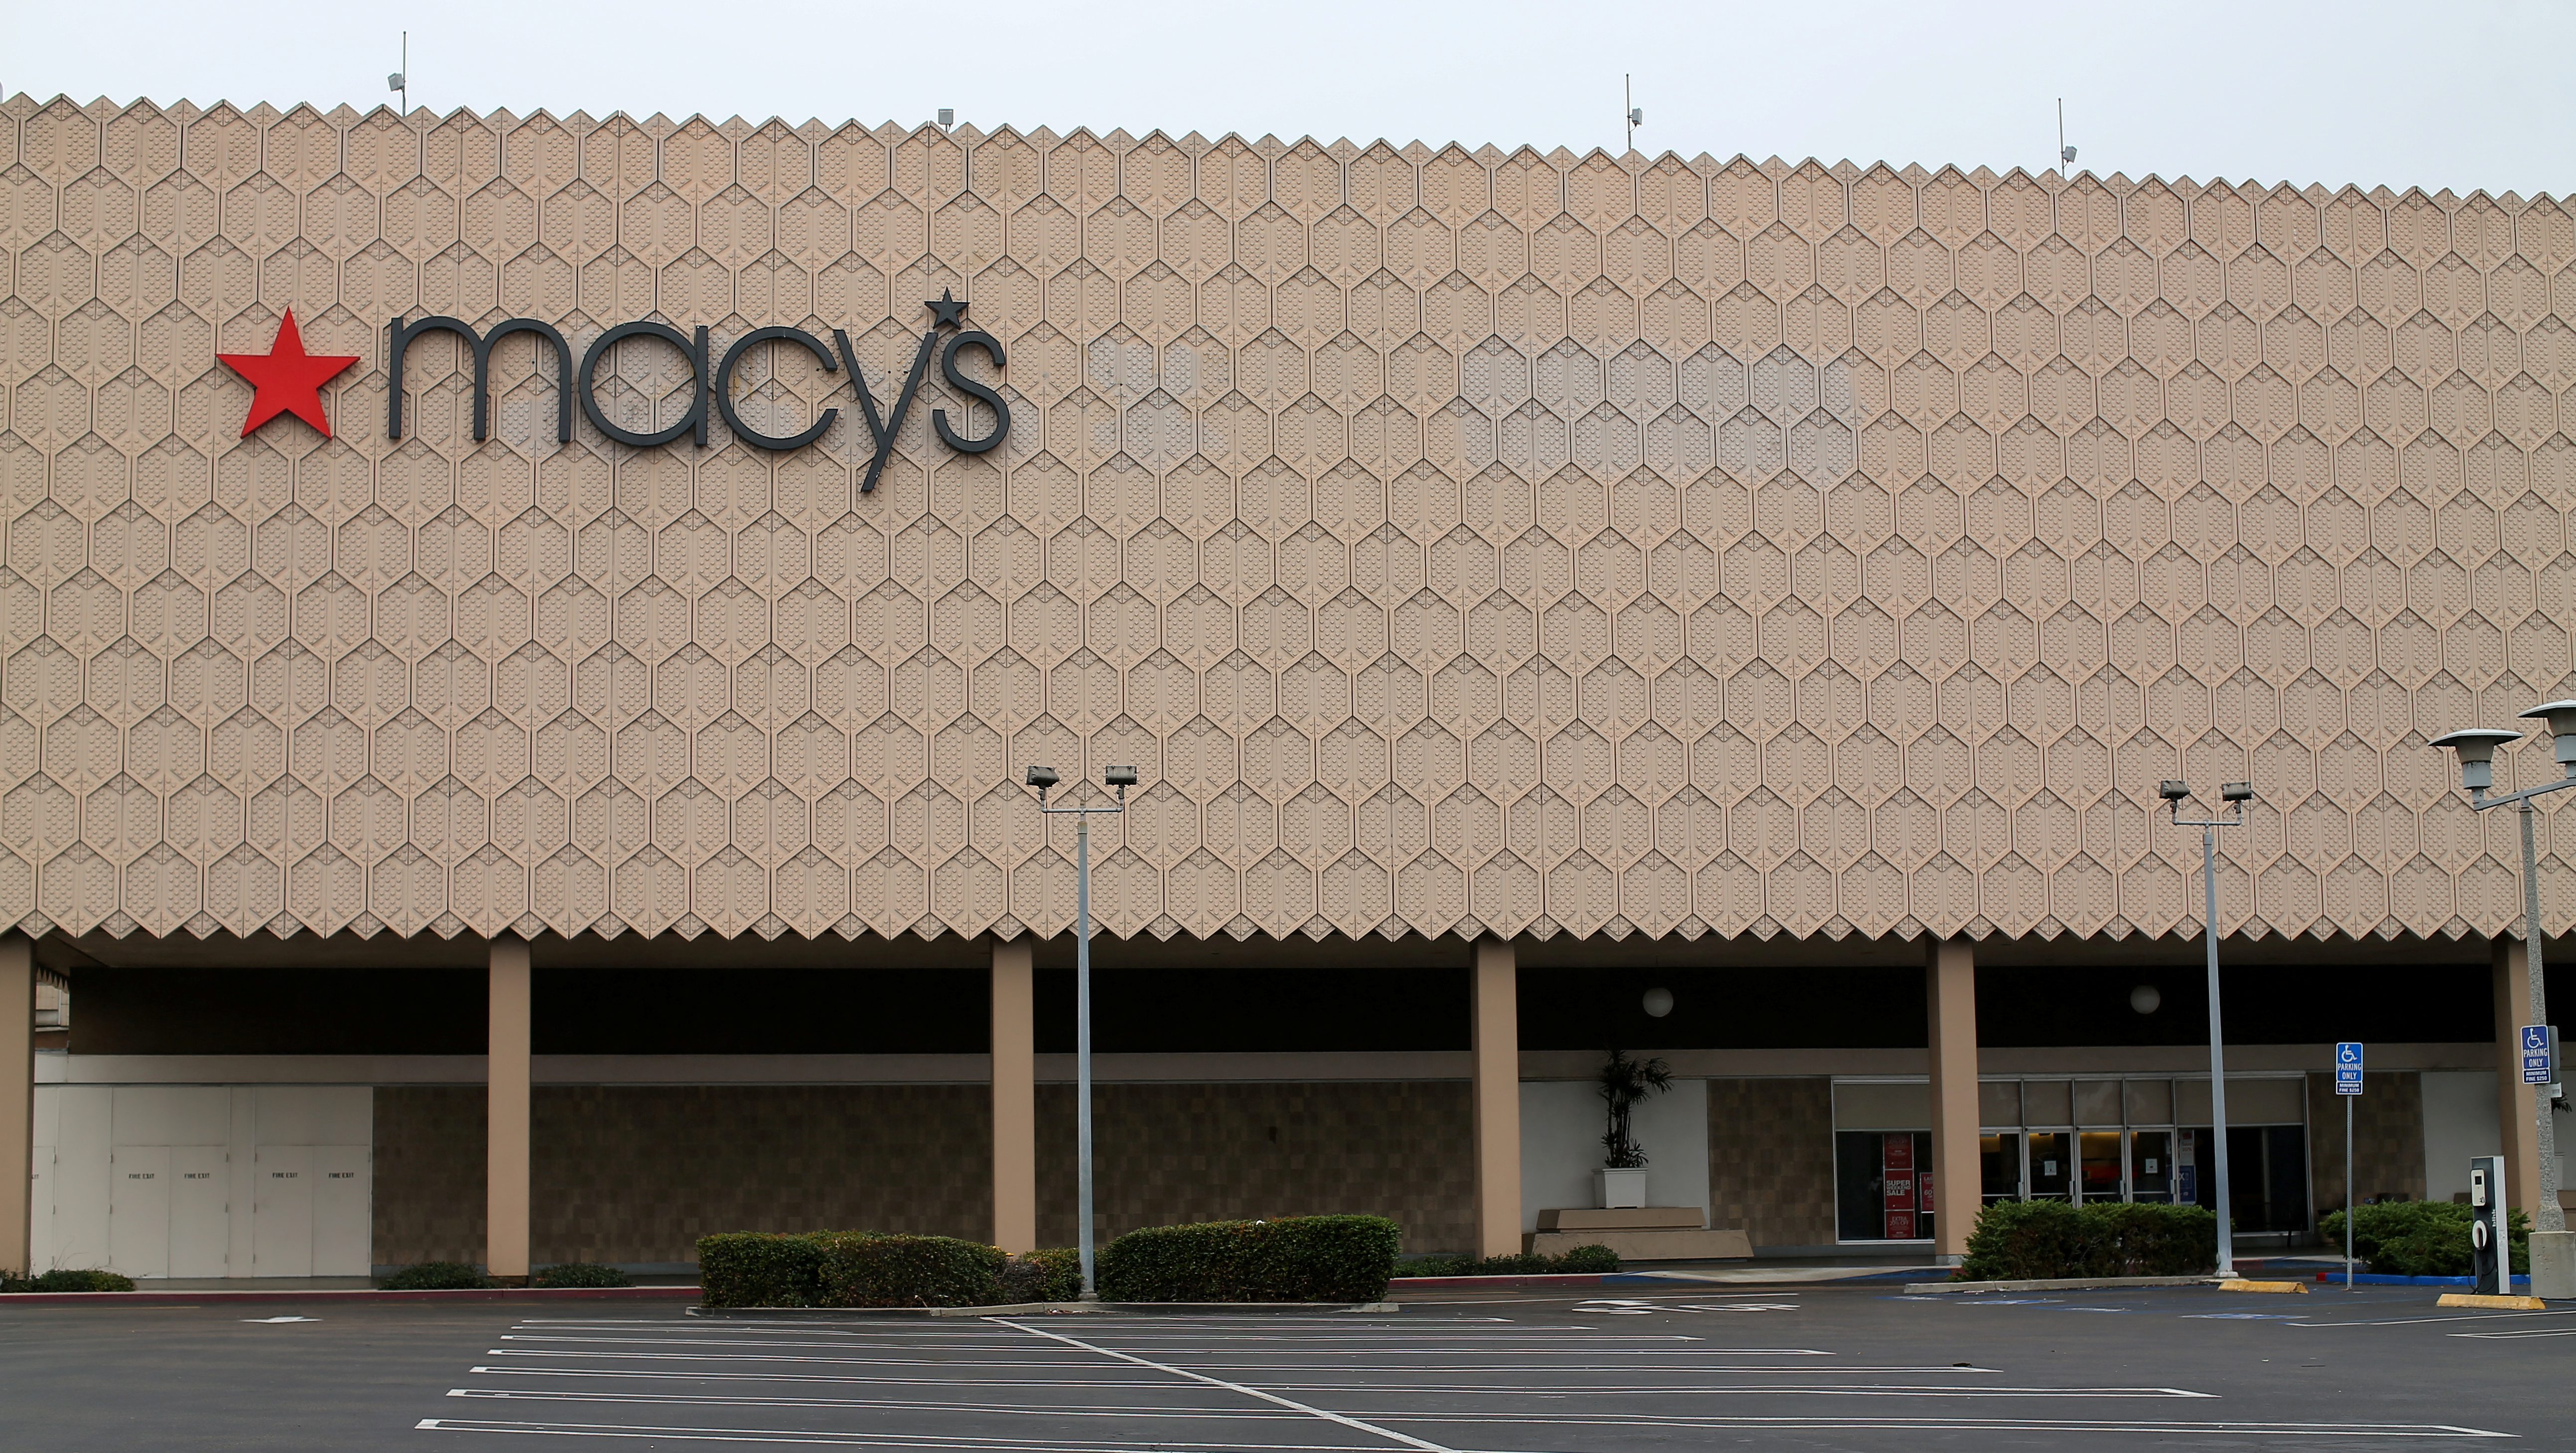 One of the 68 Macy's Inc stores the company plans to close is shown at the Mission Valley Center mall in San Diego, California, U.S. January 5, 2017. REUTERS/Mike Blake - RTX2XODS